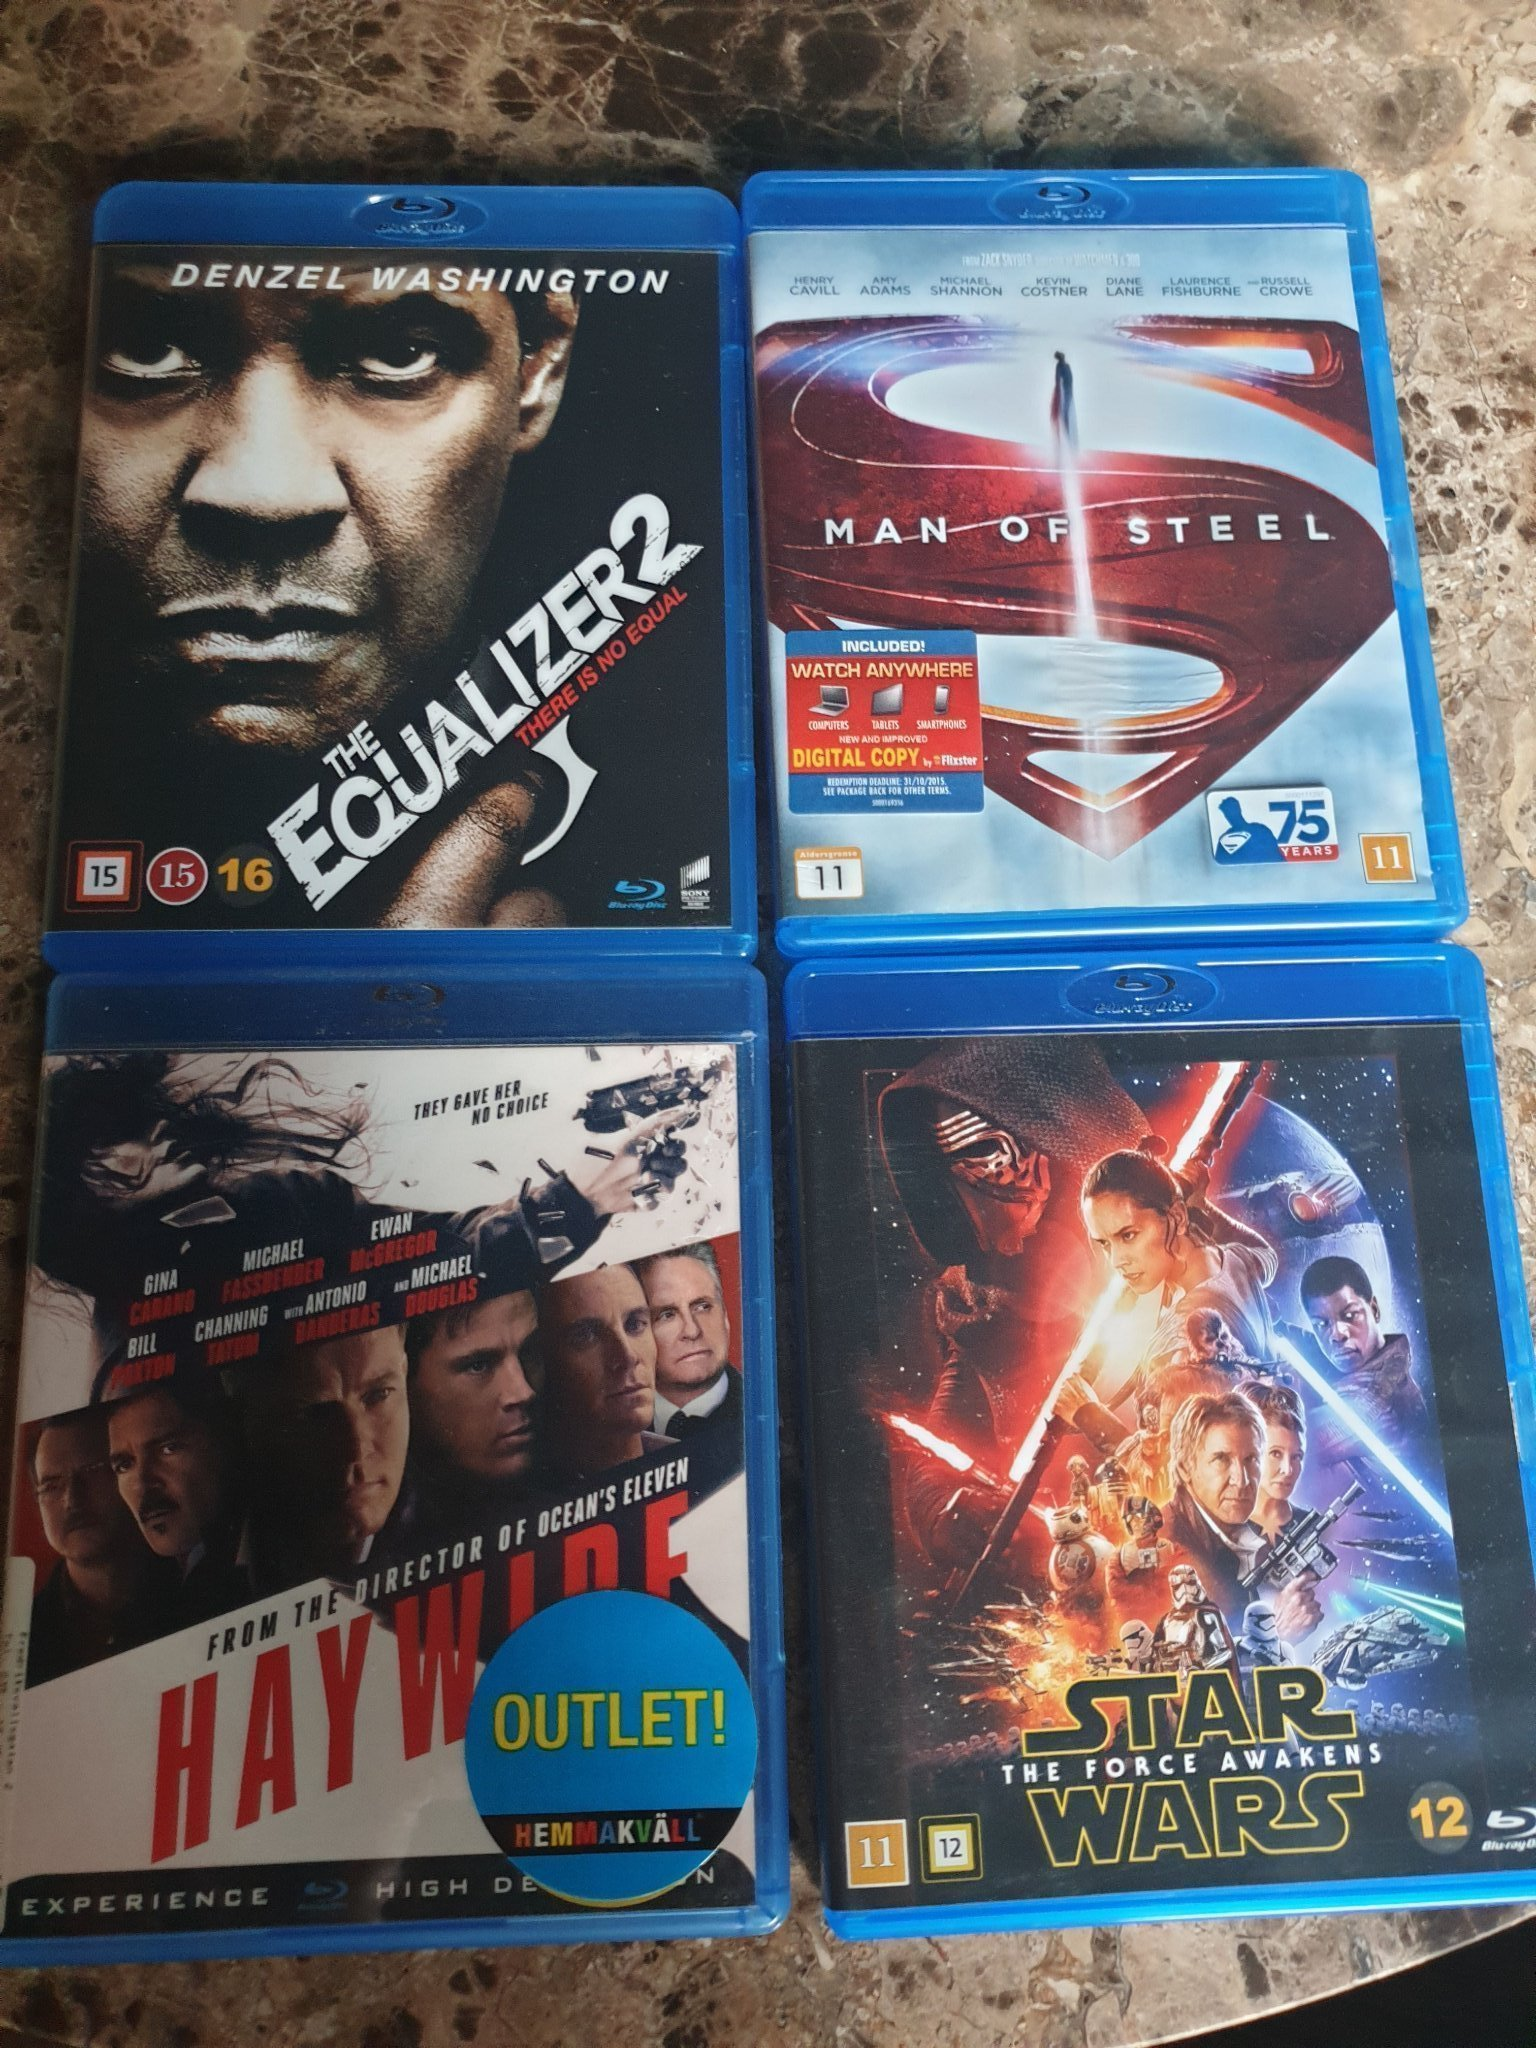 The equalizer2 / Man of Steel / Haywire / STAR WARS The force awakens